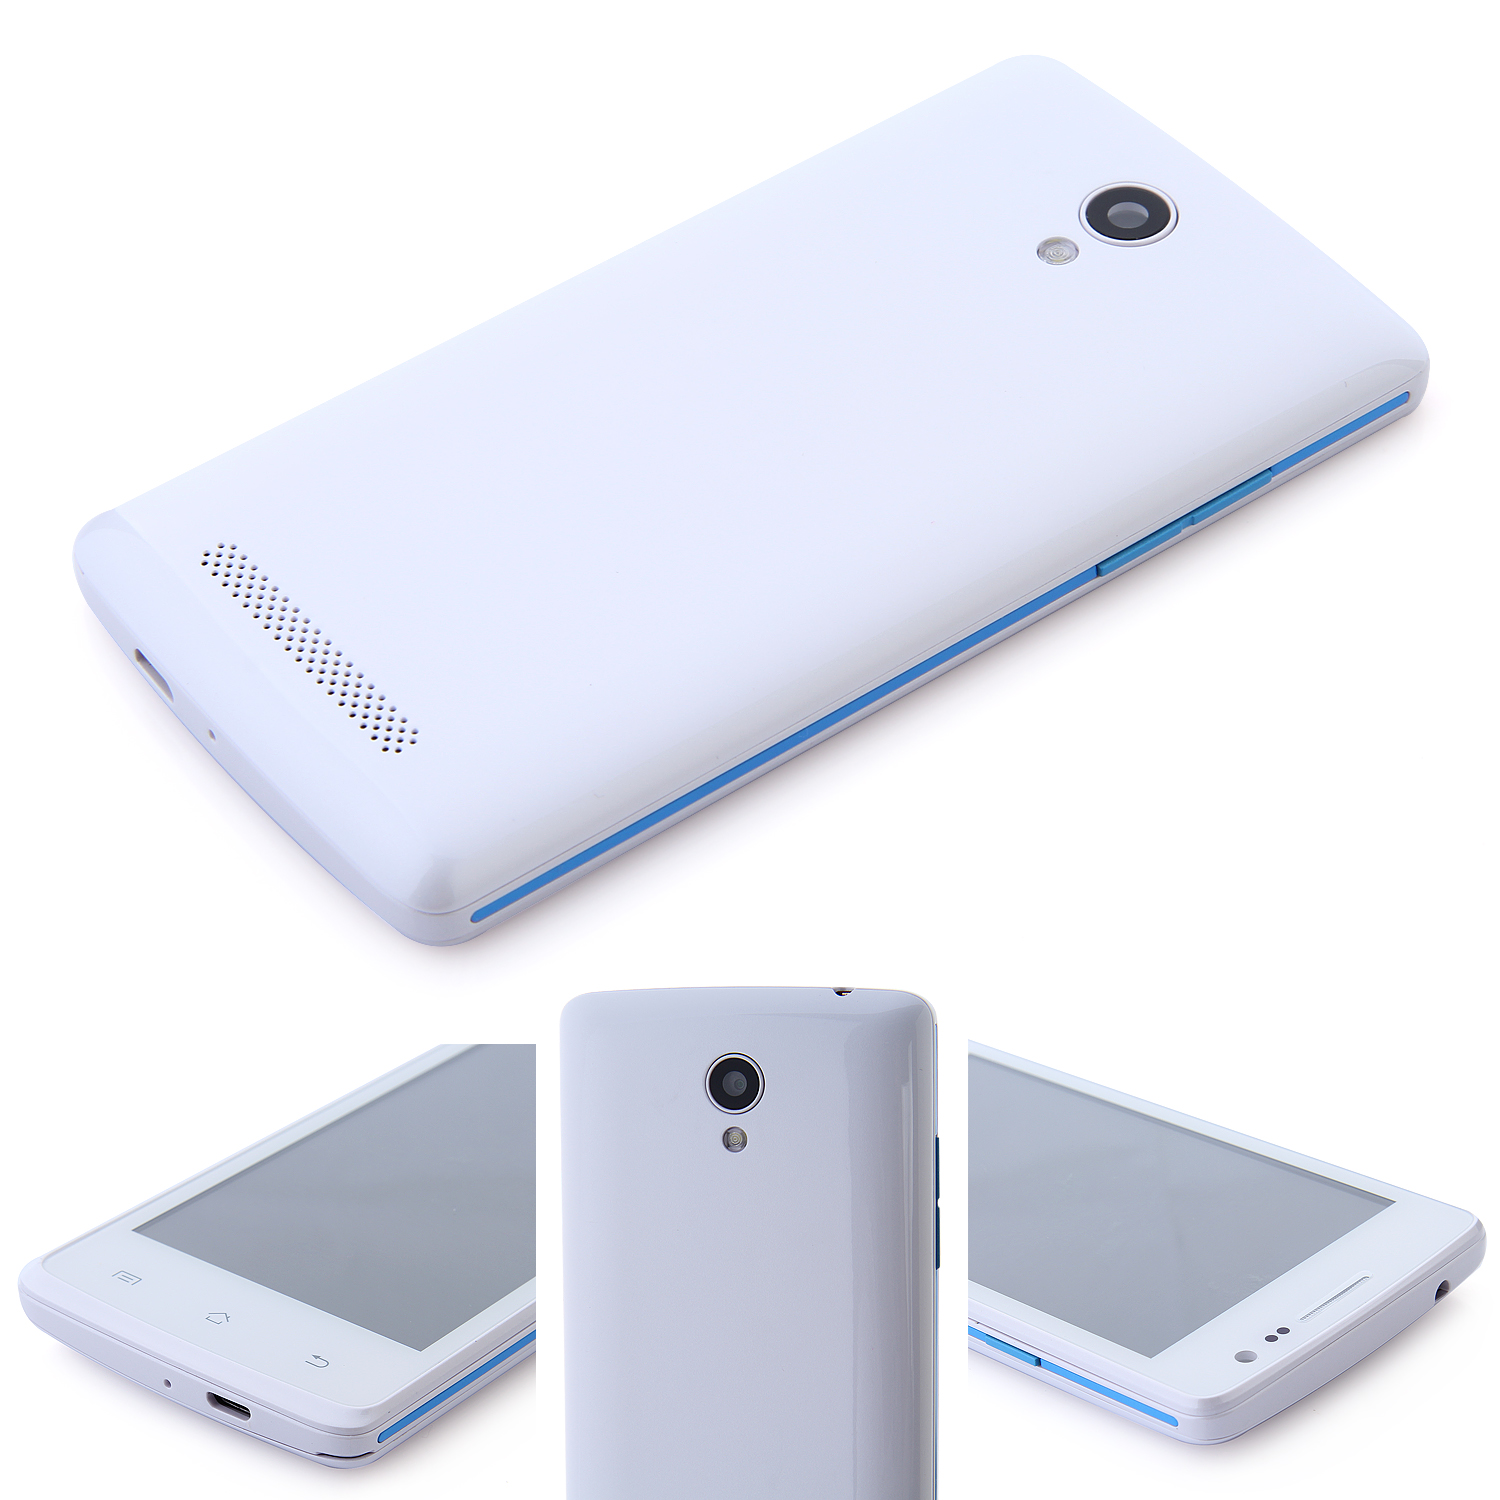 S2 Smartphone Android 4.4 SC7715 4.1 inch 3G GPS White